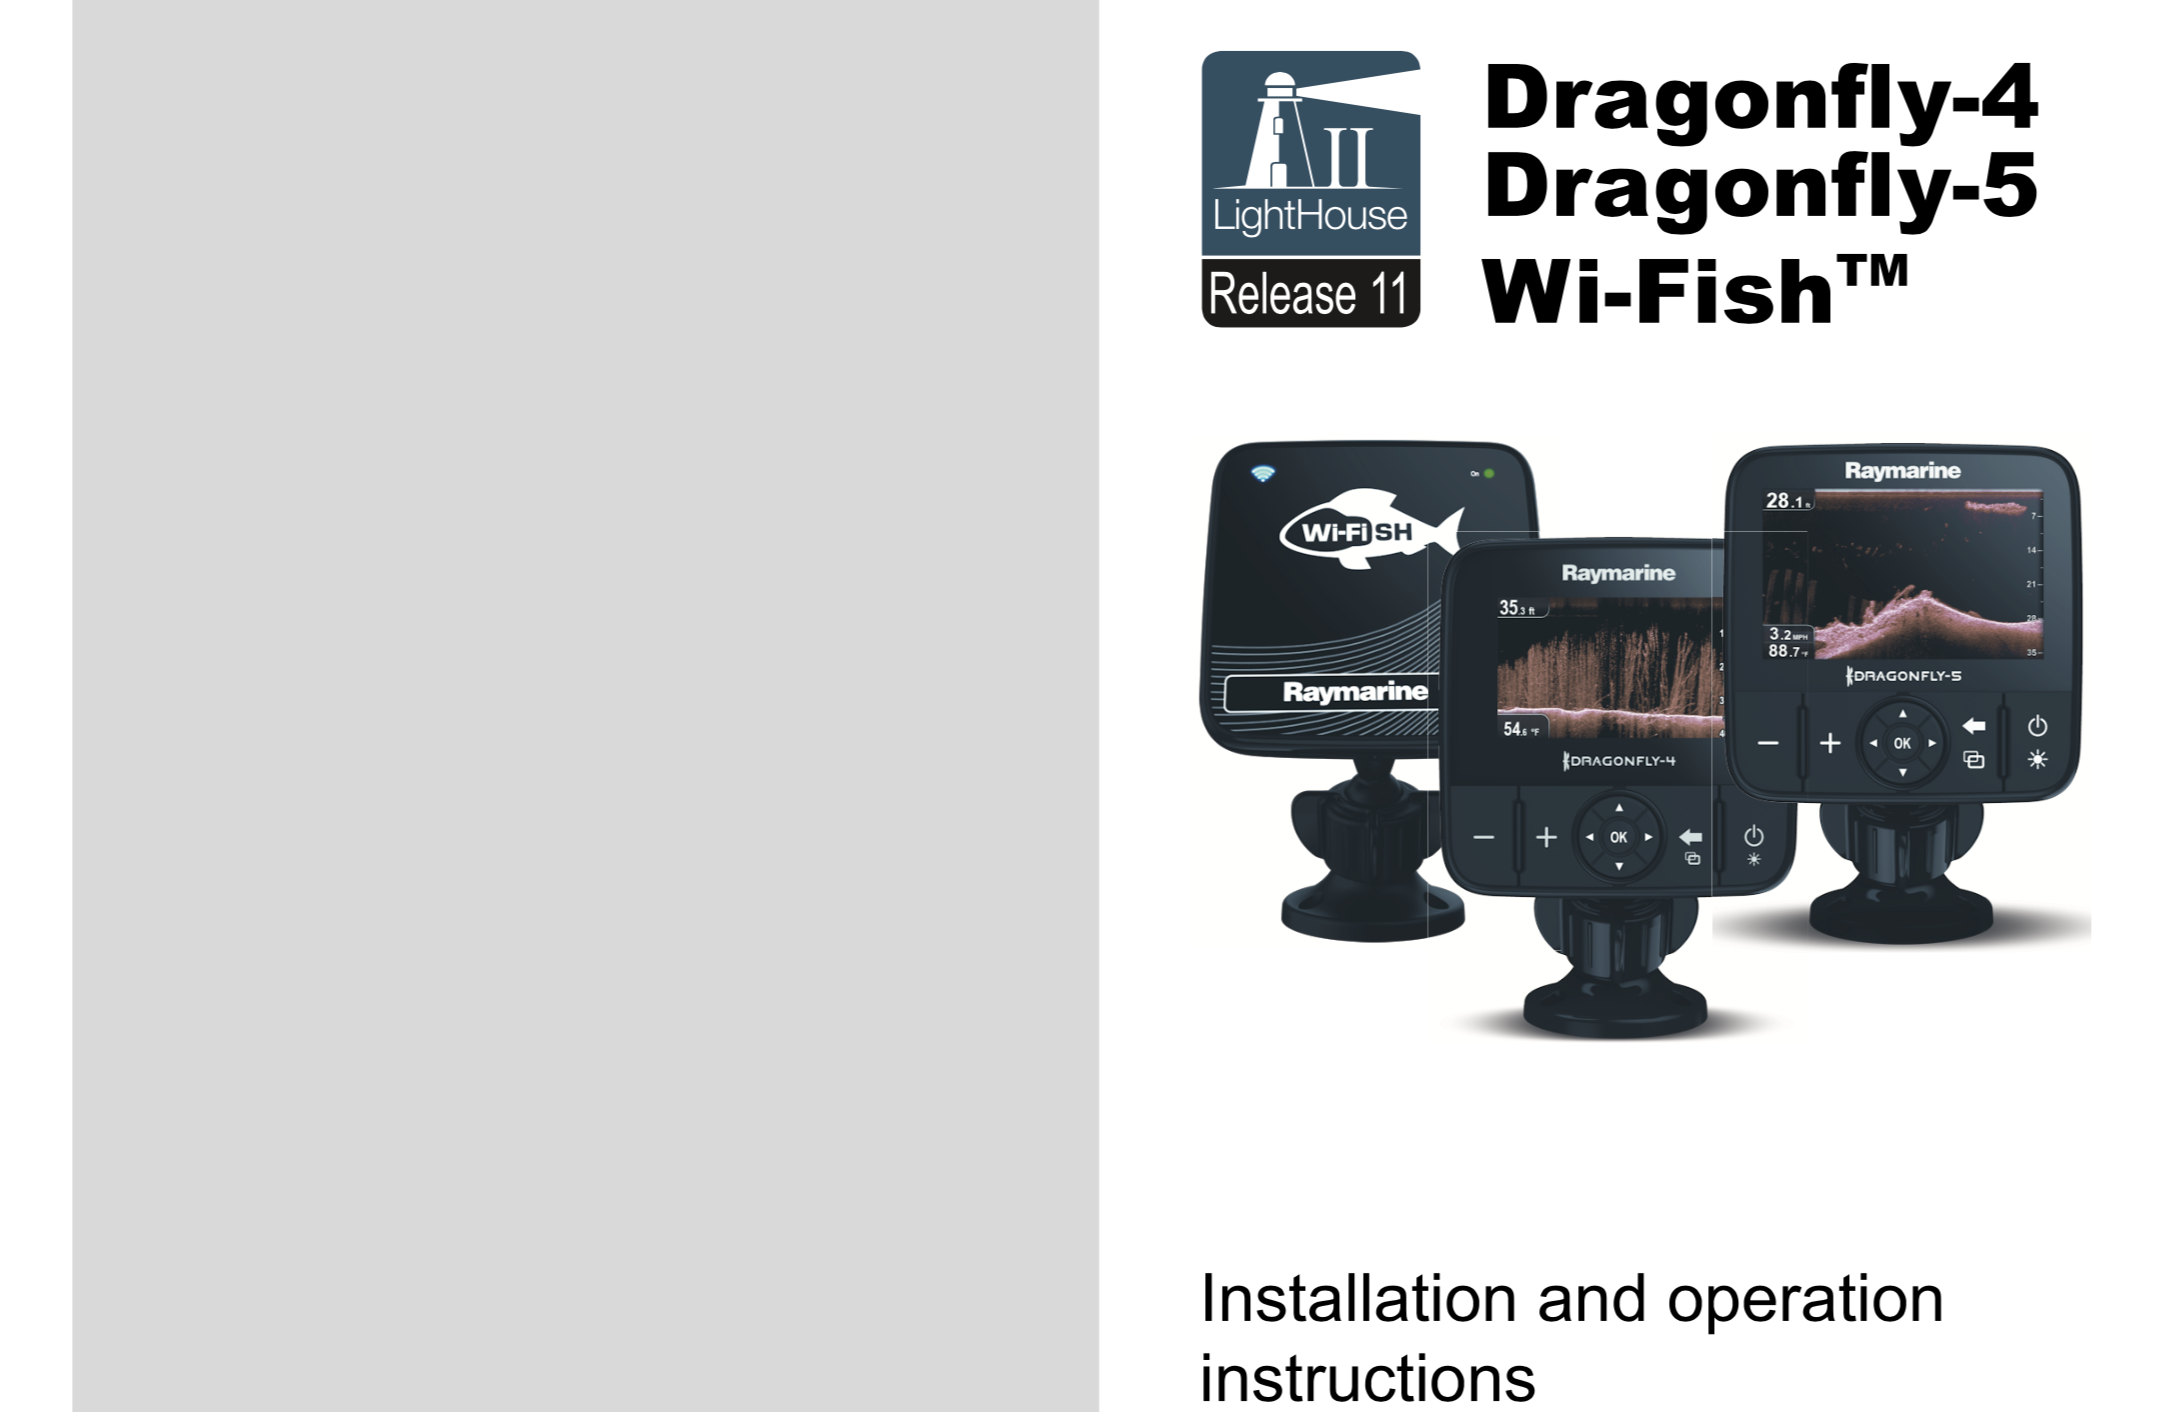 dragonfly 4 5 wi-fish installation operating instructions